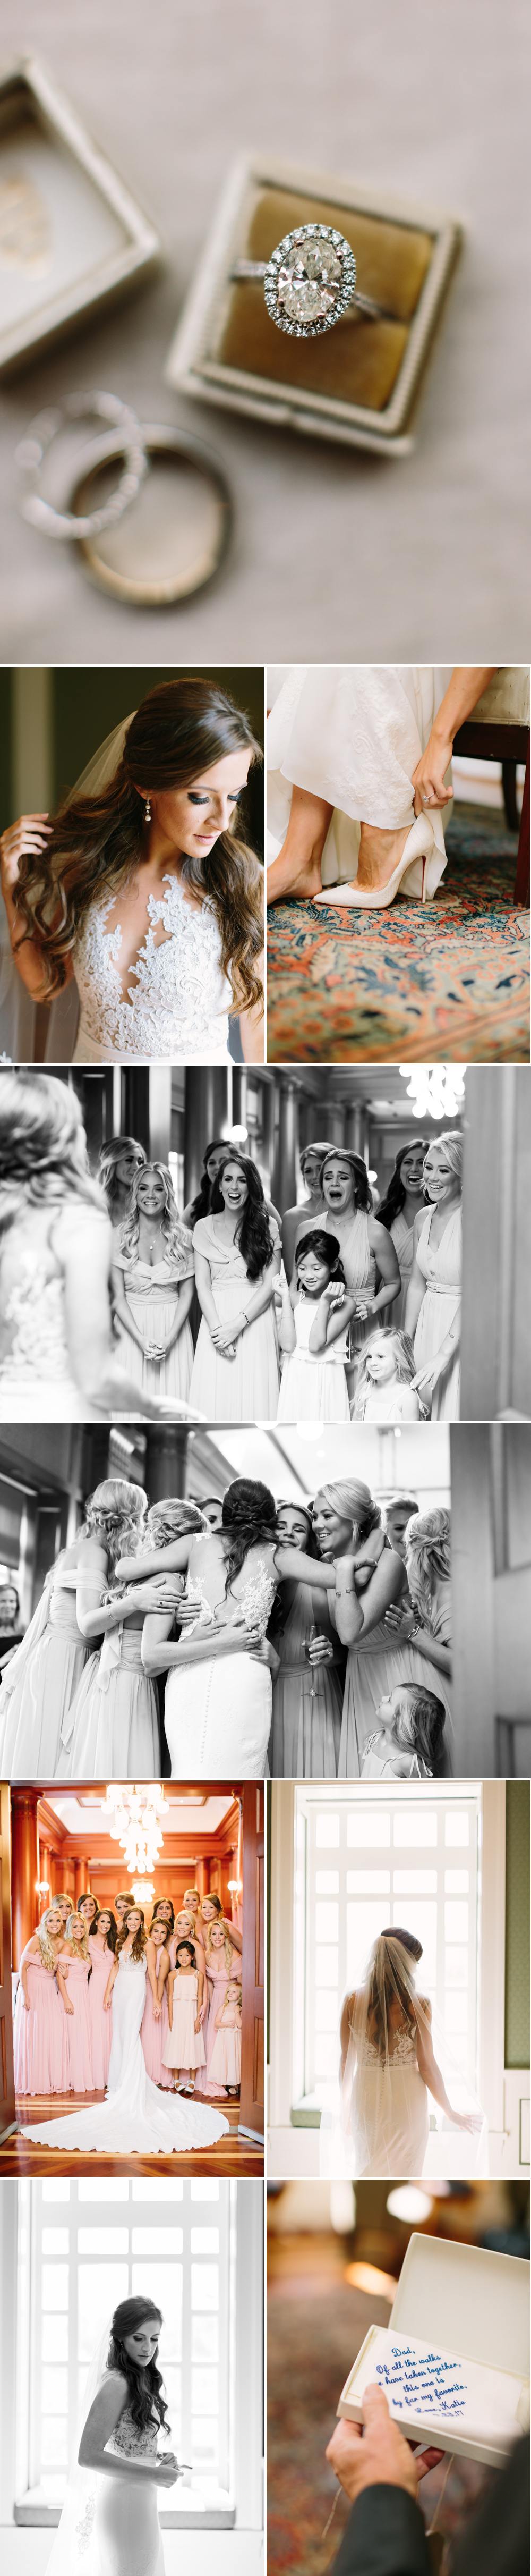 Nashville_symphony_wedding_photographer_Rachel_Moore_2.jpg